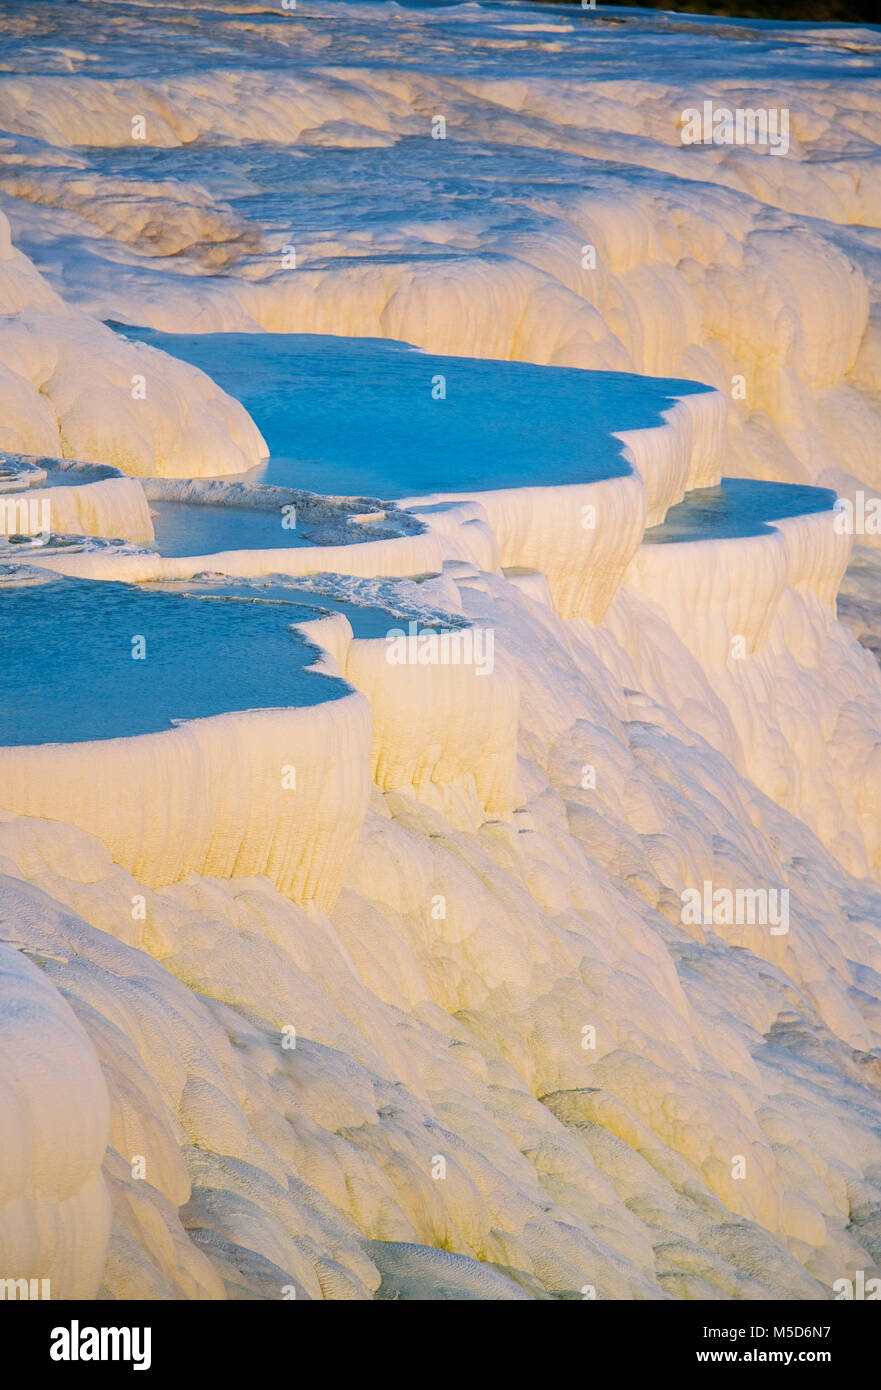 Terraced travertine thermal pools, Pamukkale, UNESCO World Heritage Site, Anatolia, Turkey - Stock Image